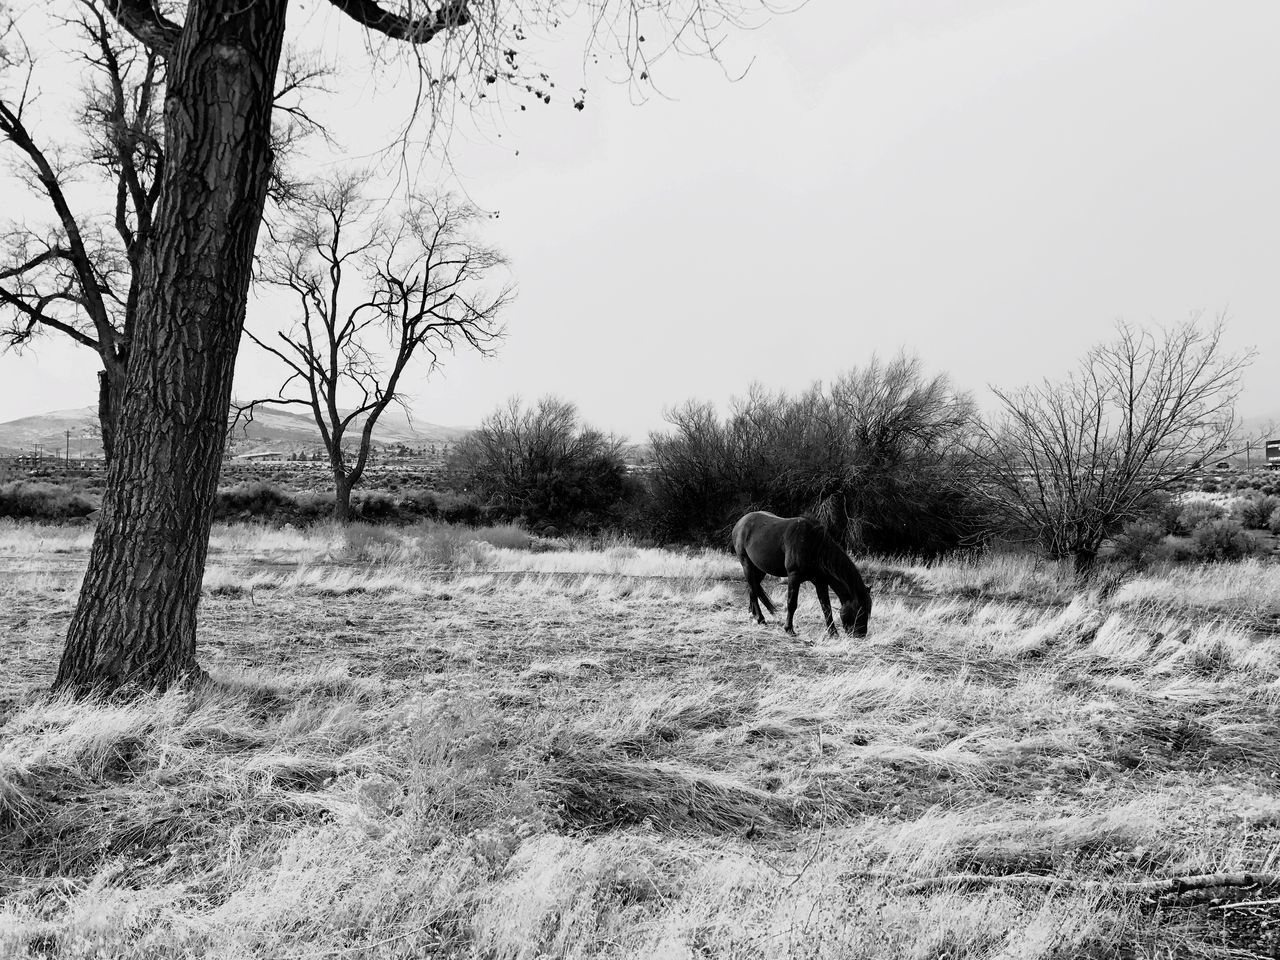 mammal, domestic animals, animal themes, field, horse, bare tree, tree, nature, day, outdoors, no people, one animal, landscape, grass, pets, beauty in nature, sky